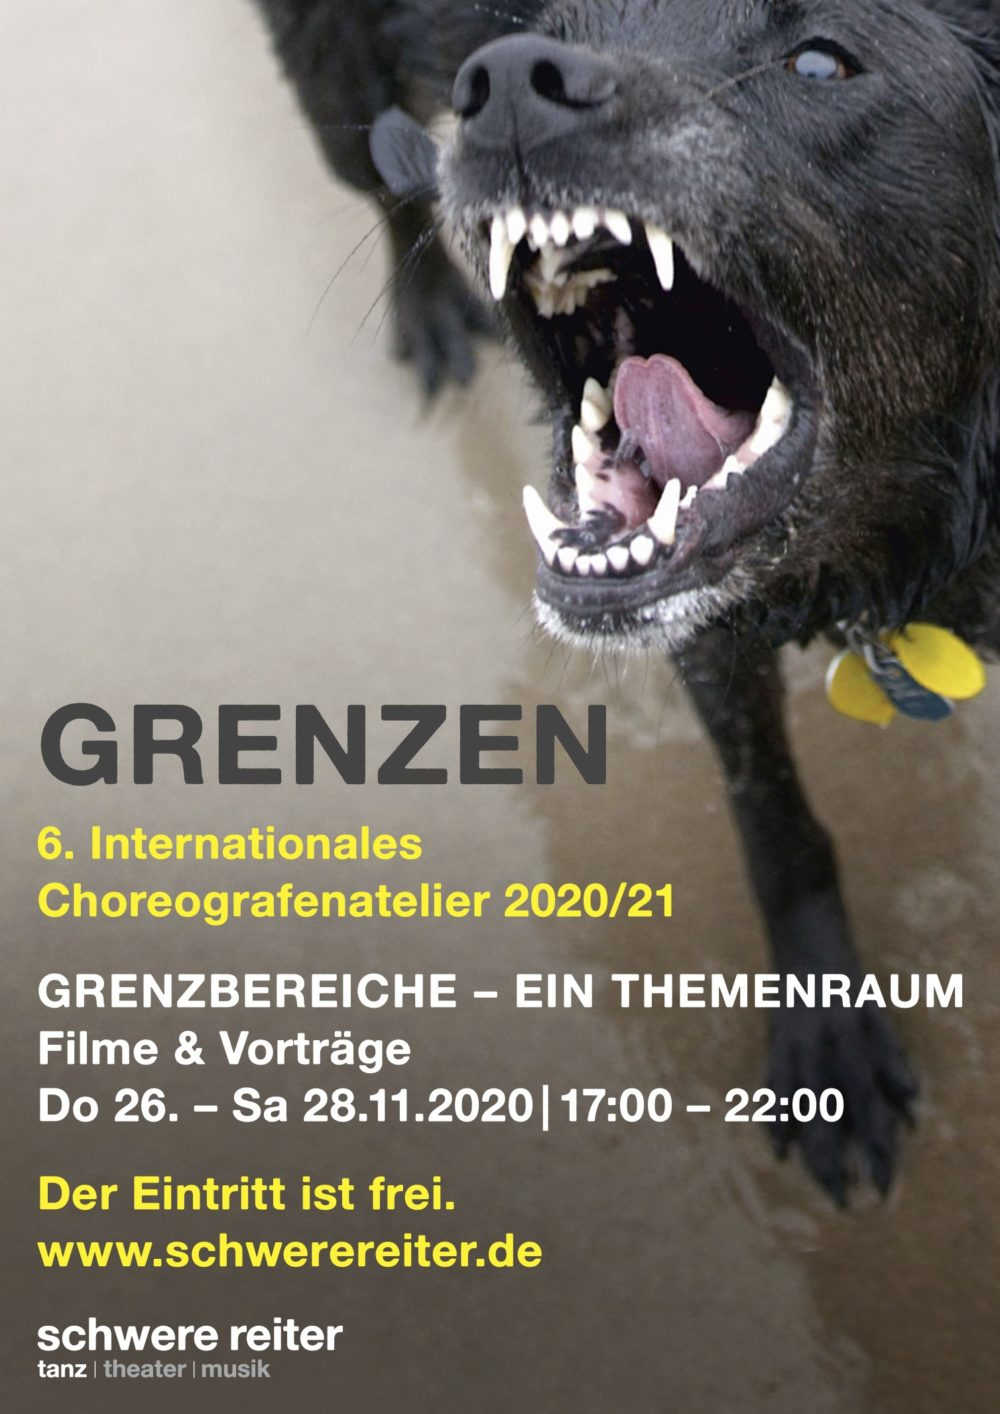 Anzeige: 6. internationales Choreografenatelier 2020/21